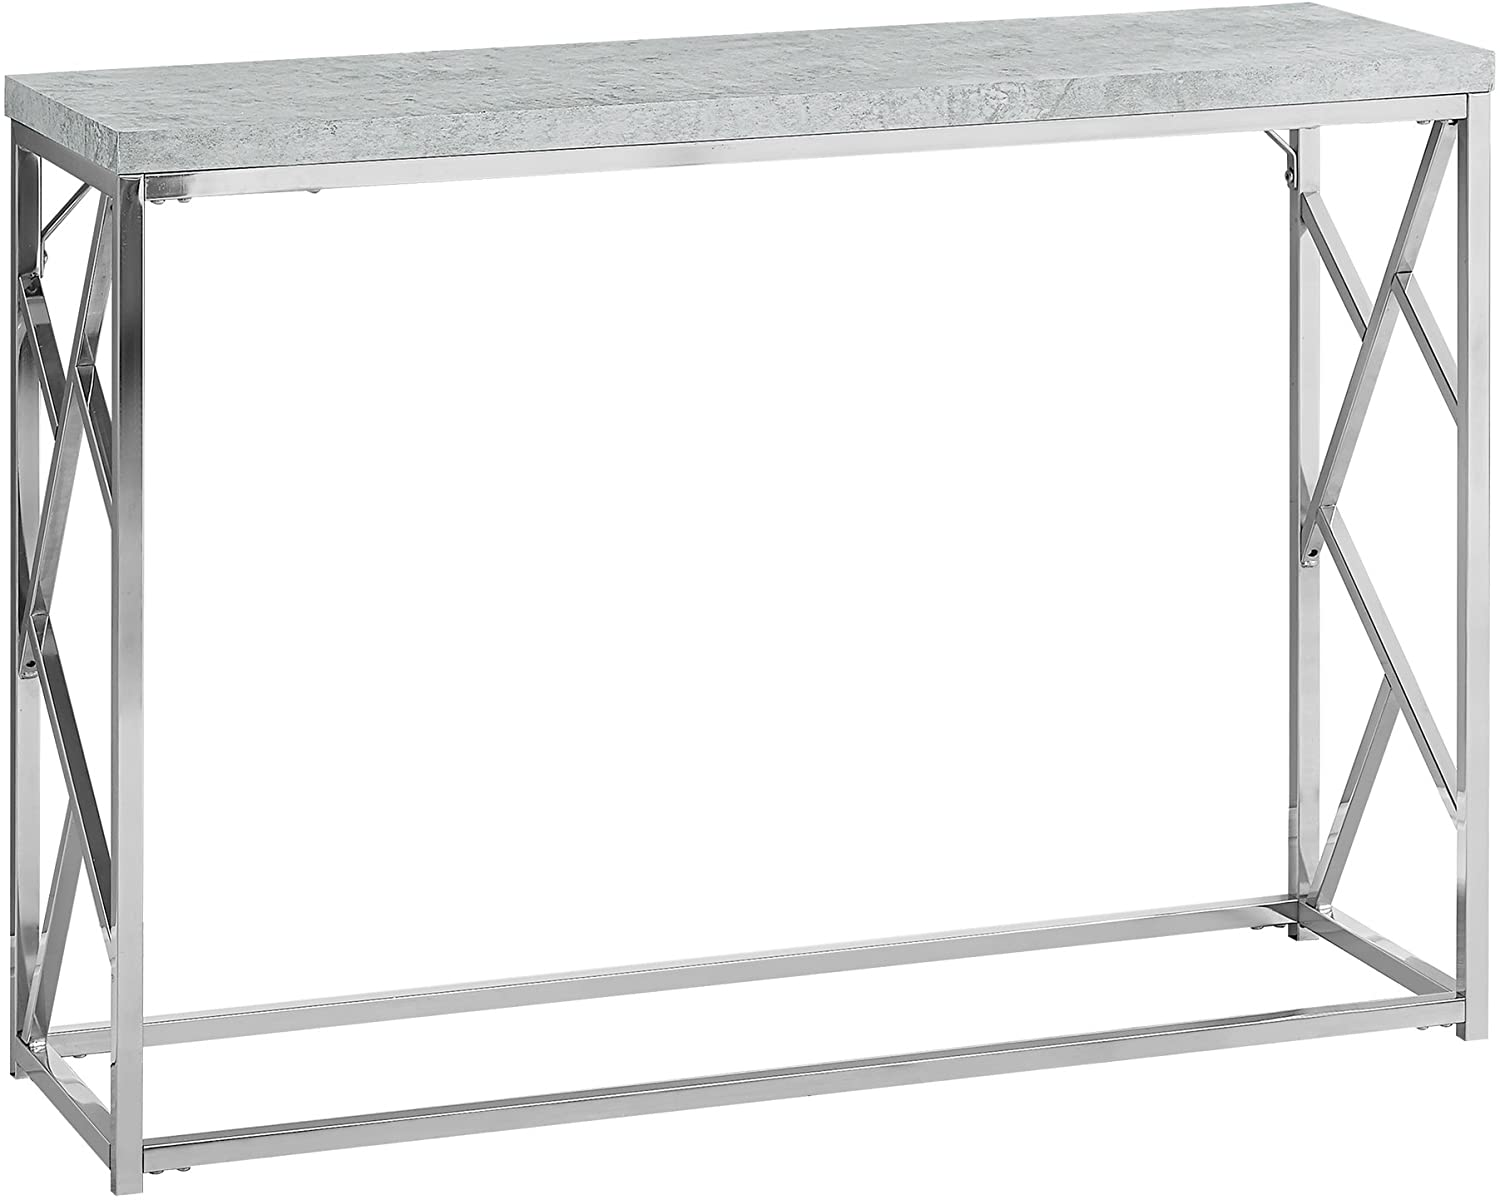 Monarch Specialties I Console Table - Grey Cement With Chrome Metal